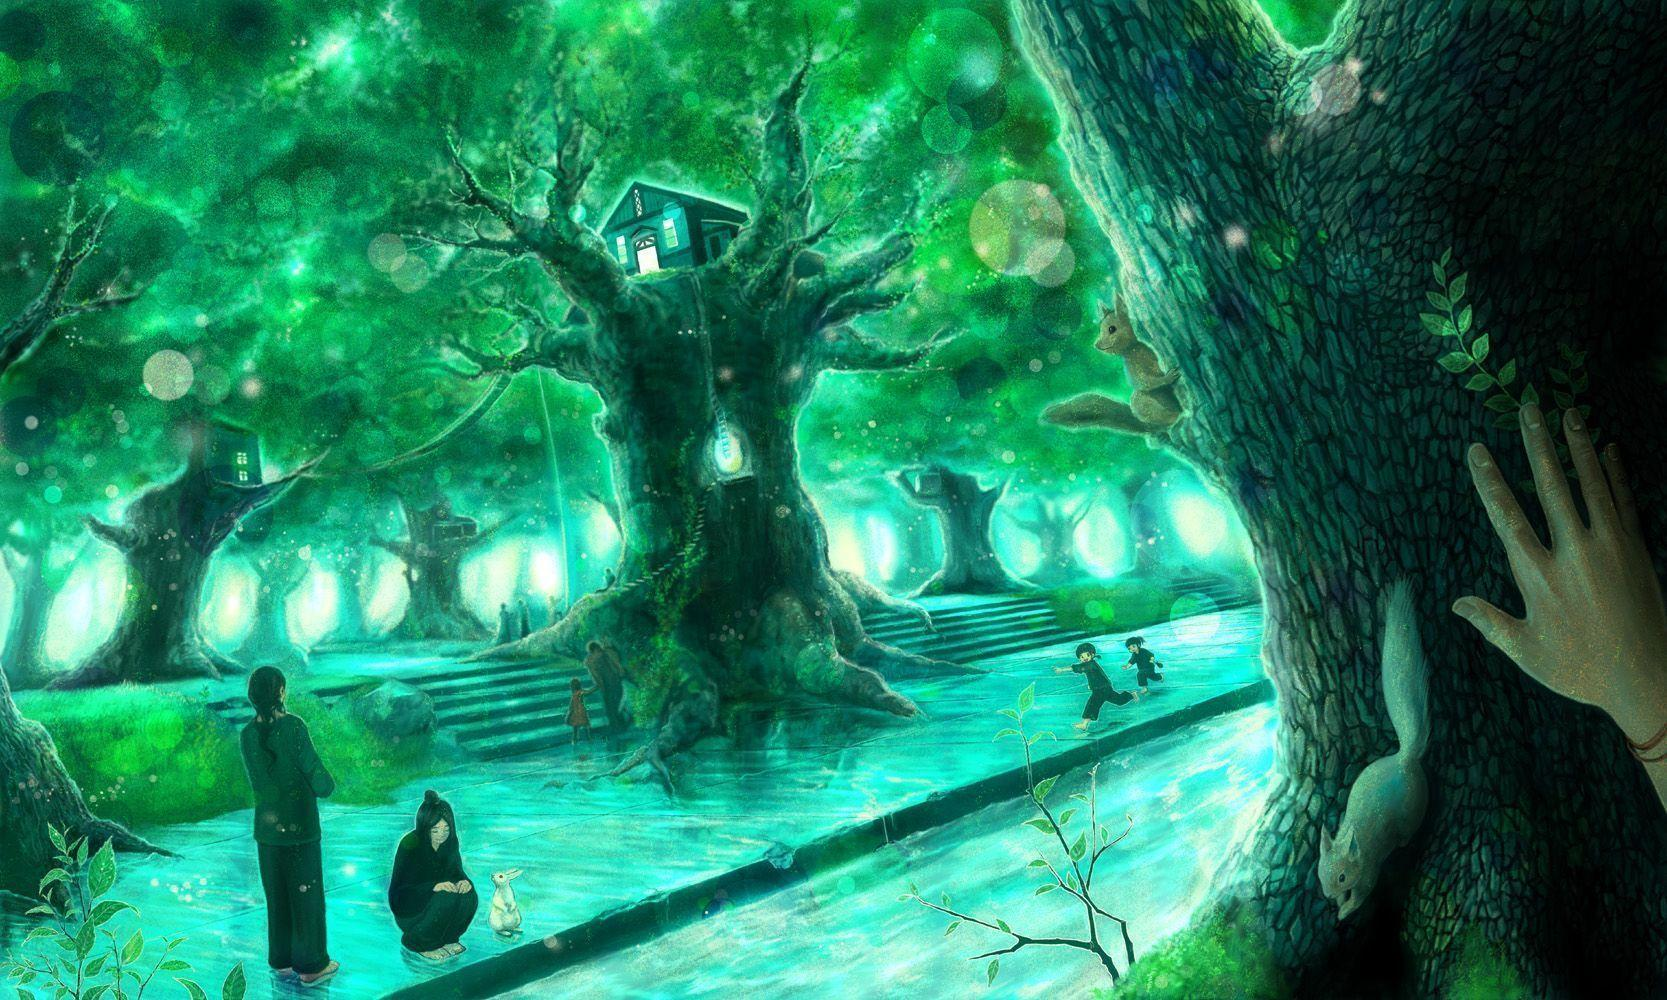 Download Anime Forest Wallpaper 1667x1000 | Wallpoper #176751